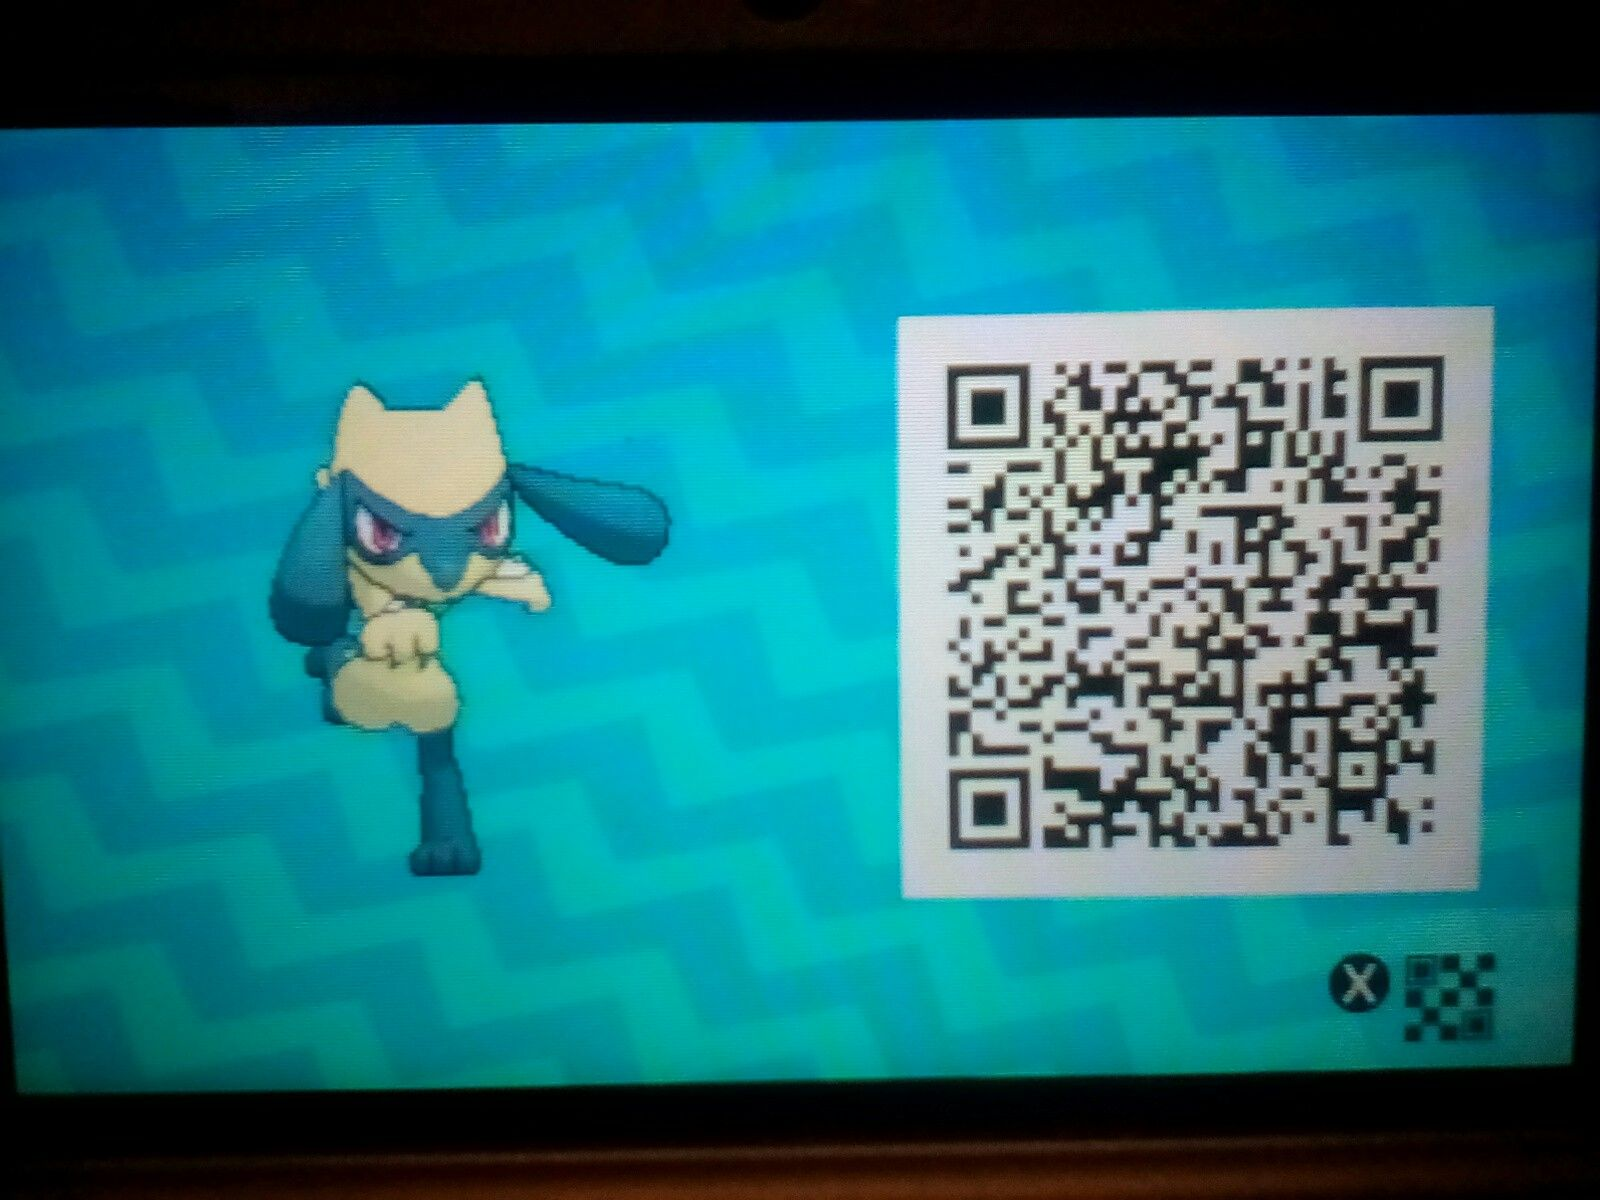 My Cousin Caught A Shiny Riolu Then I Scanned The Qr Code Now I